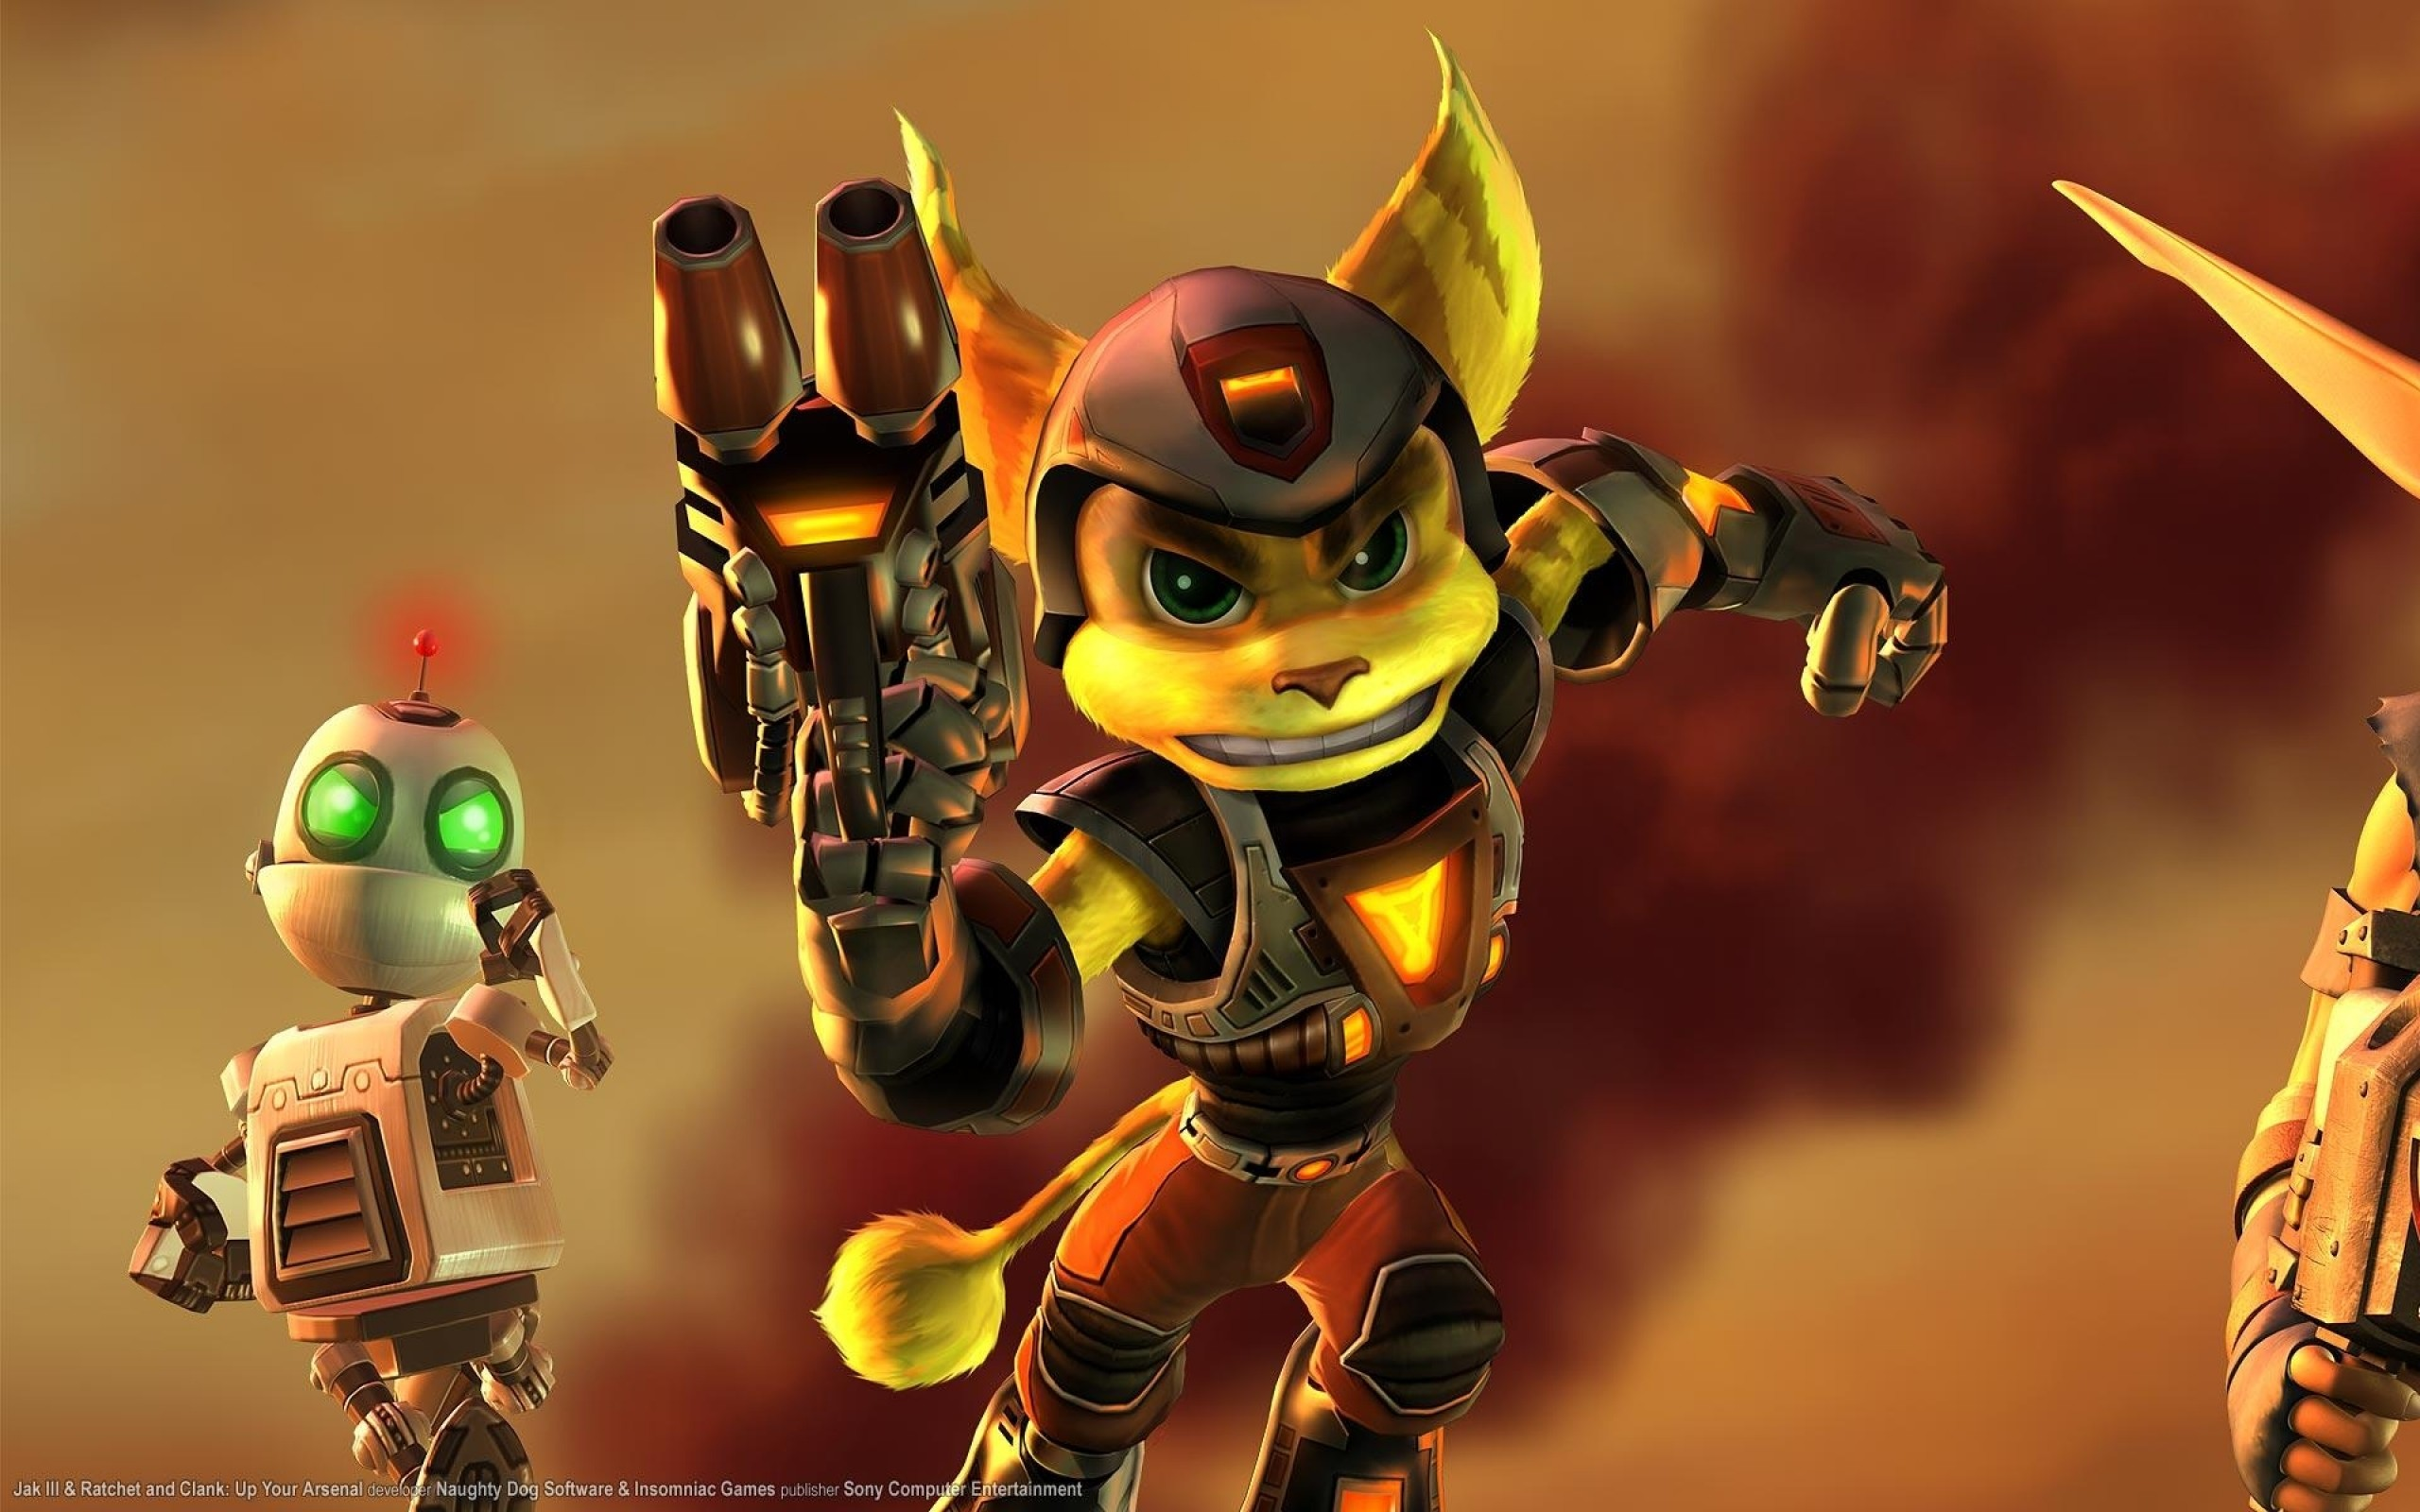 Download Jak Daxter Wallpapers: Jak And Daxter Wallpapers (74+ Pictures